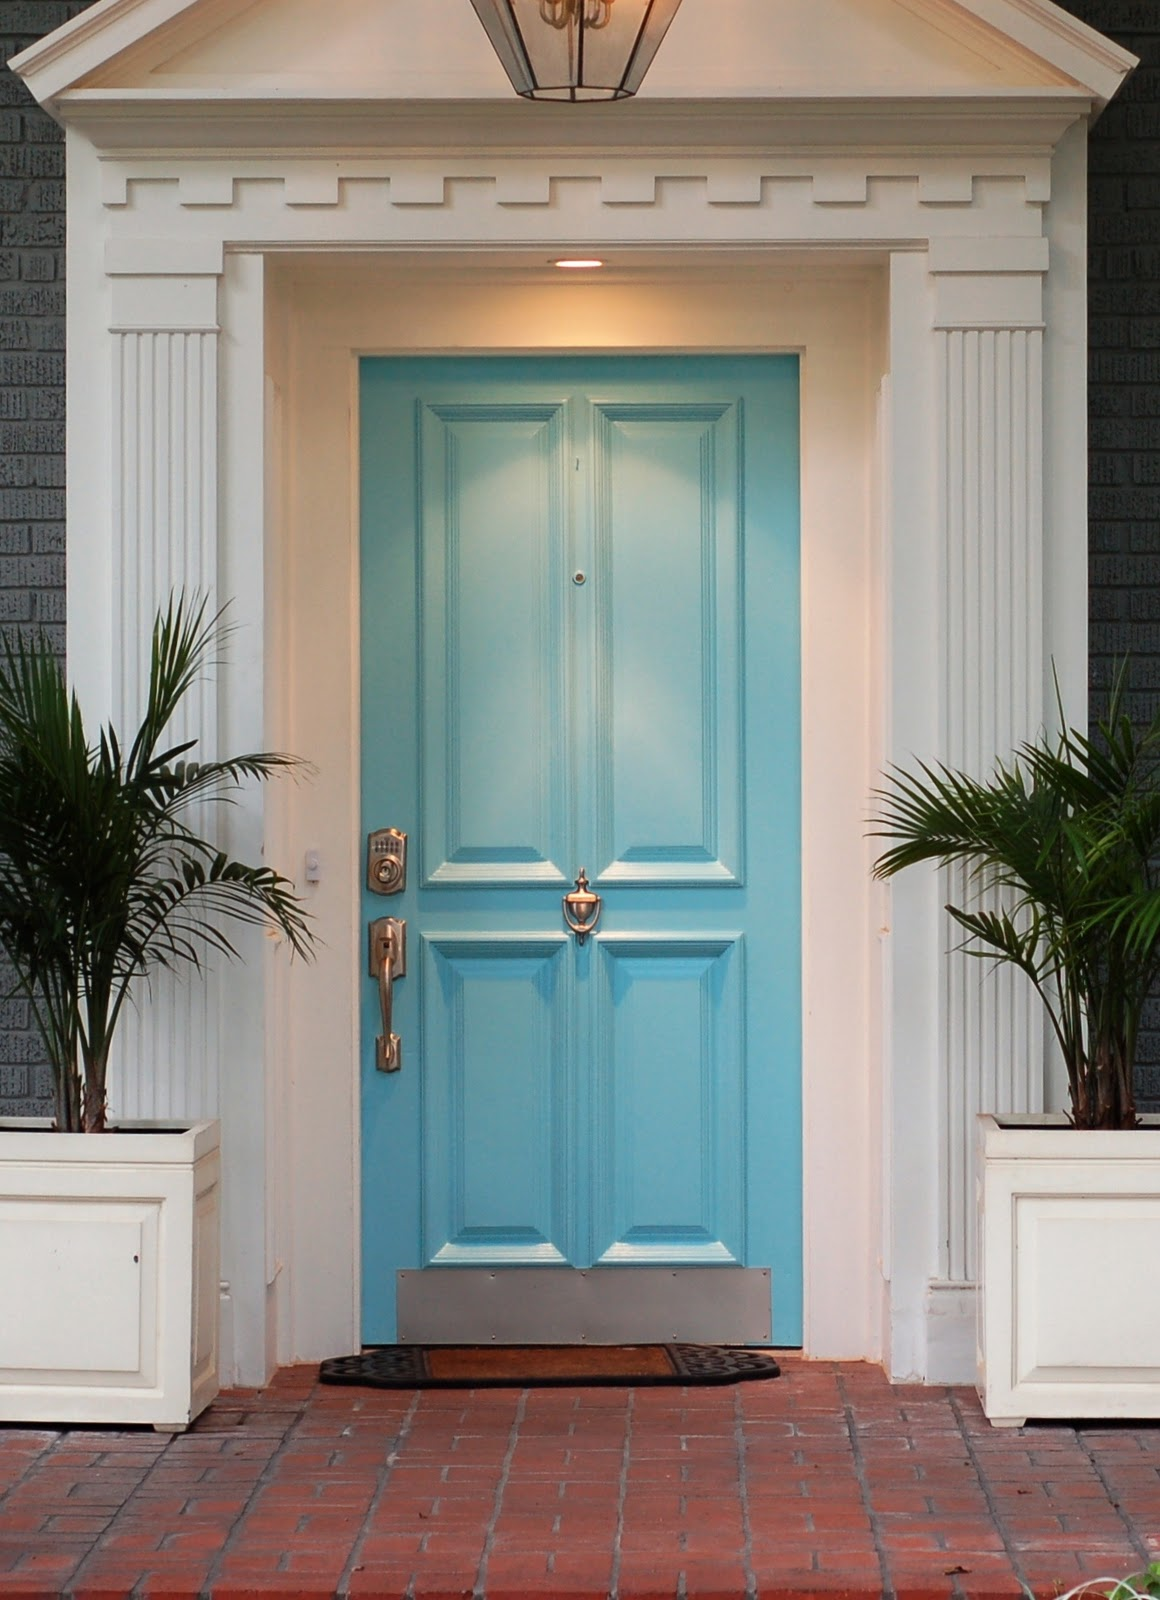 North Dallas Real Estate: Front Door Colors to help Sell ...